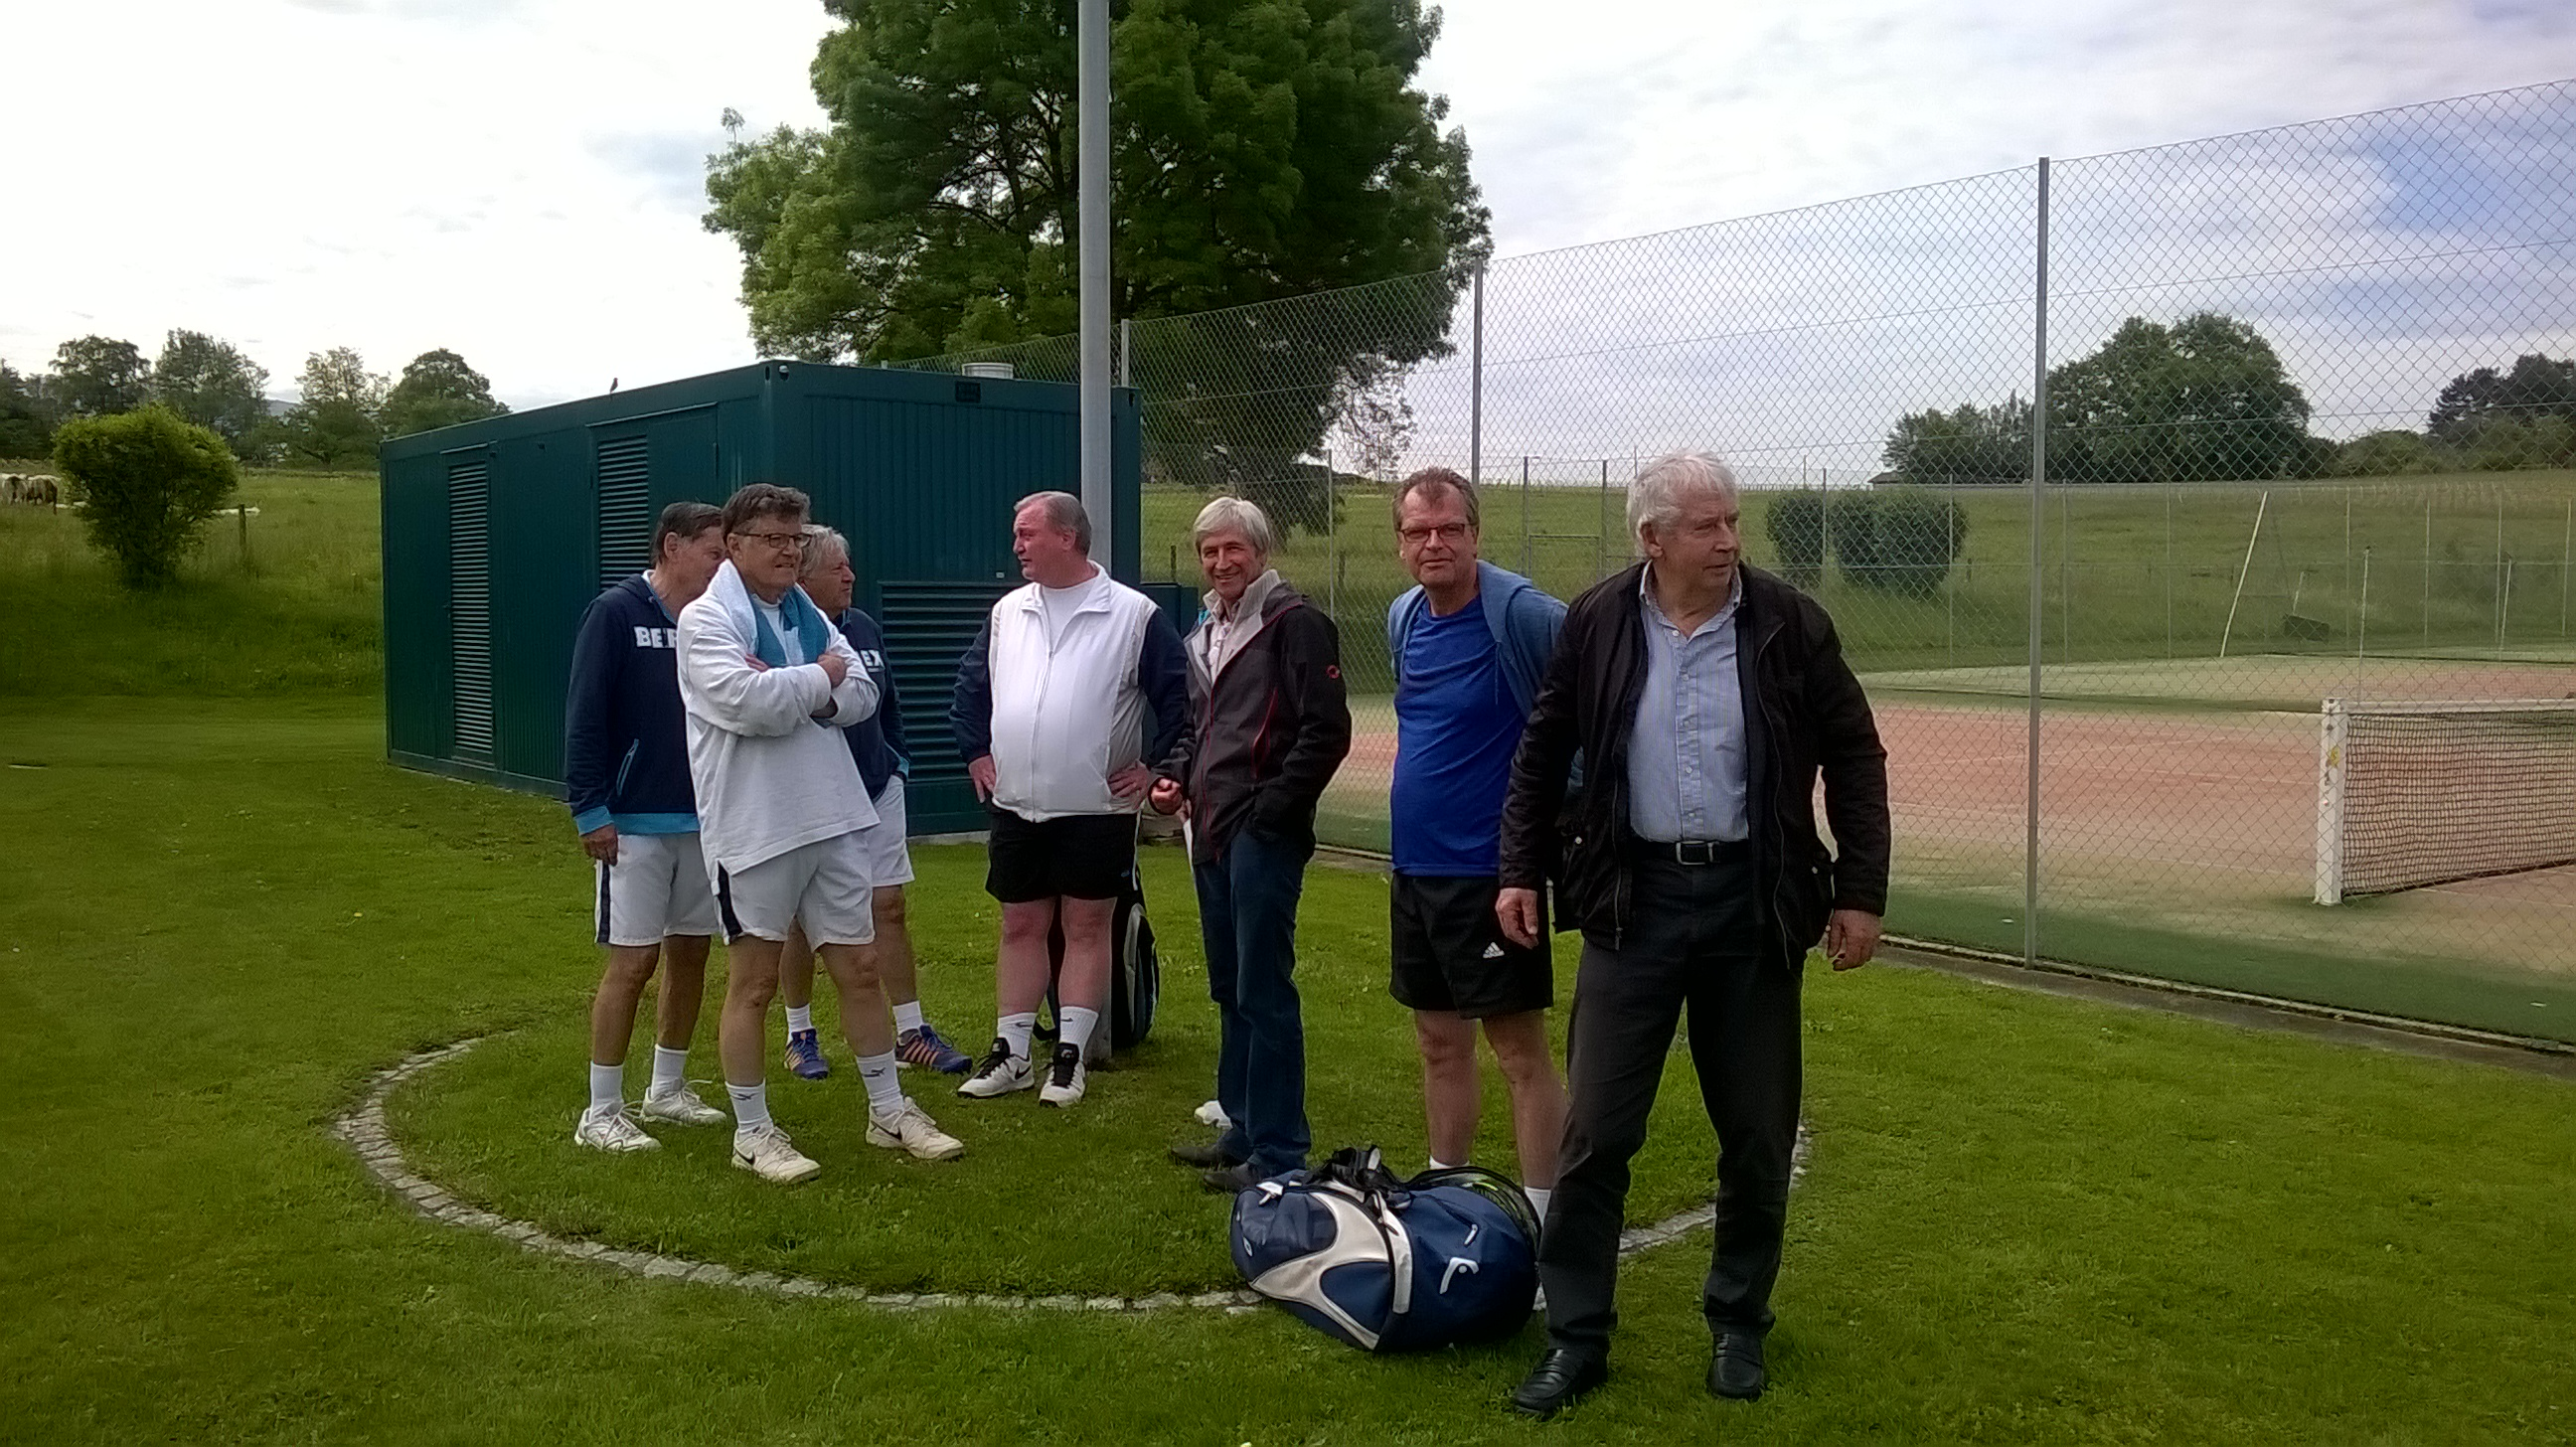 Rencontre interclub tennis